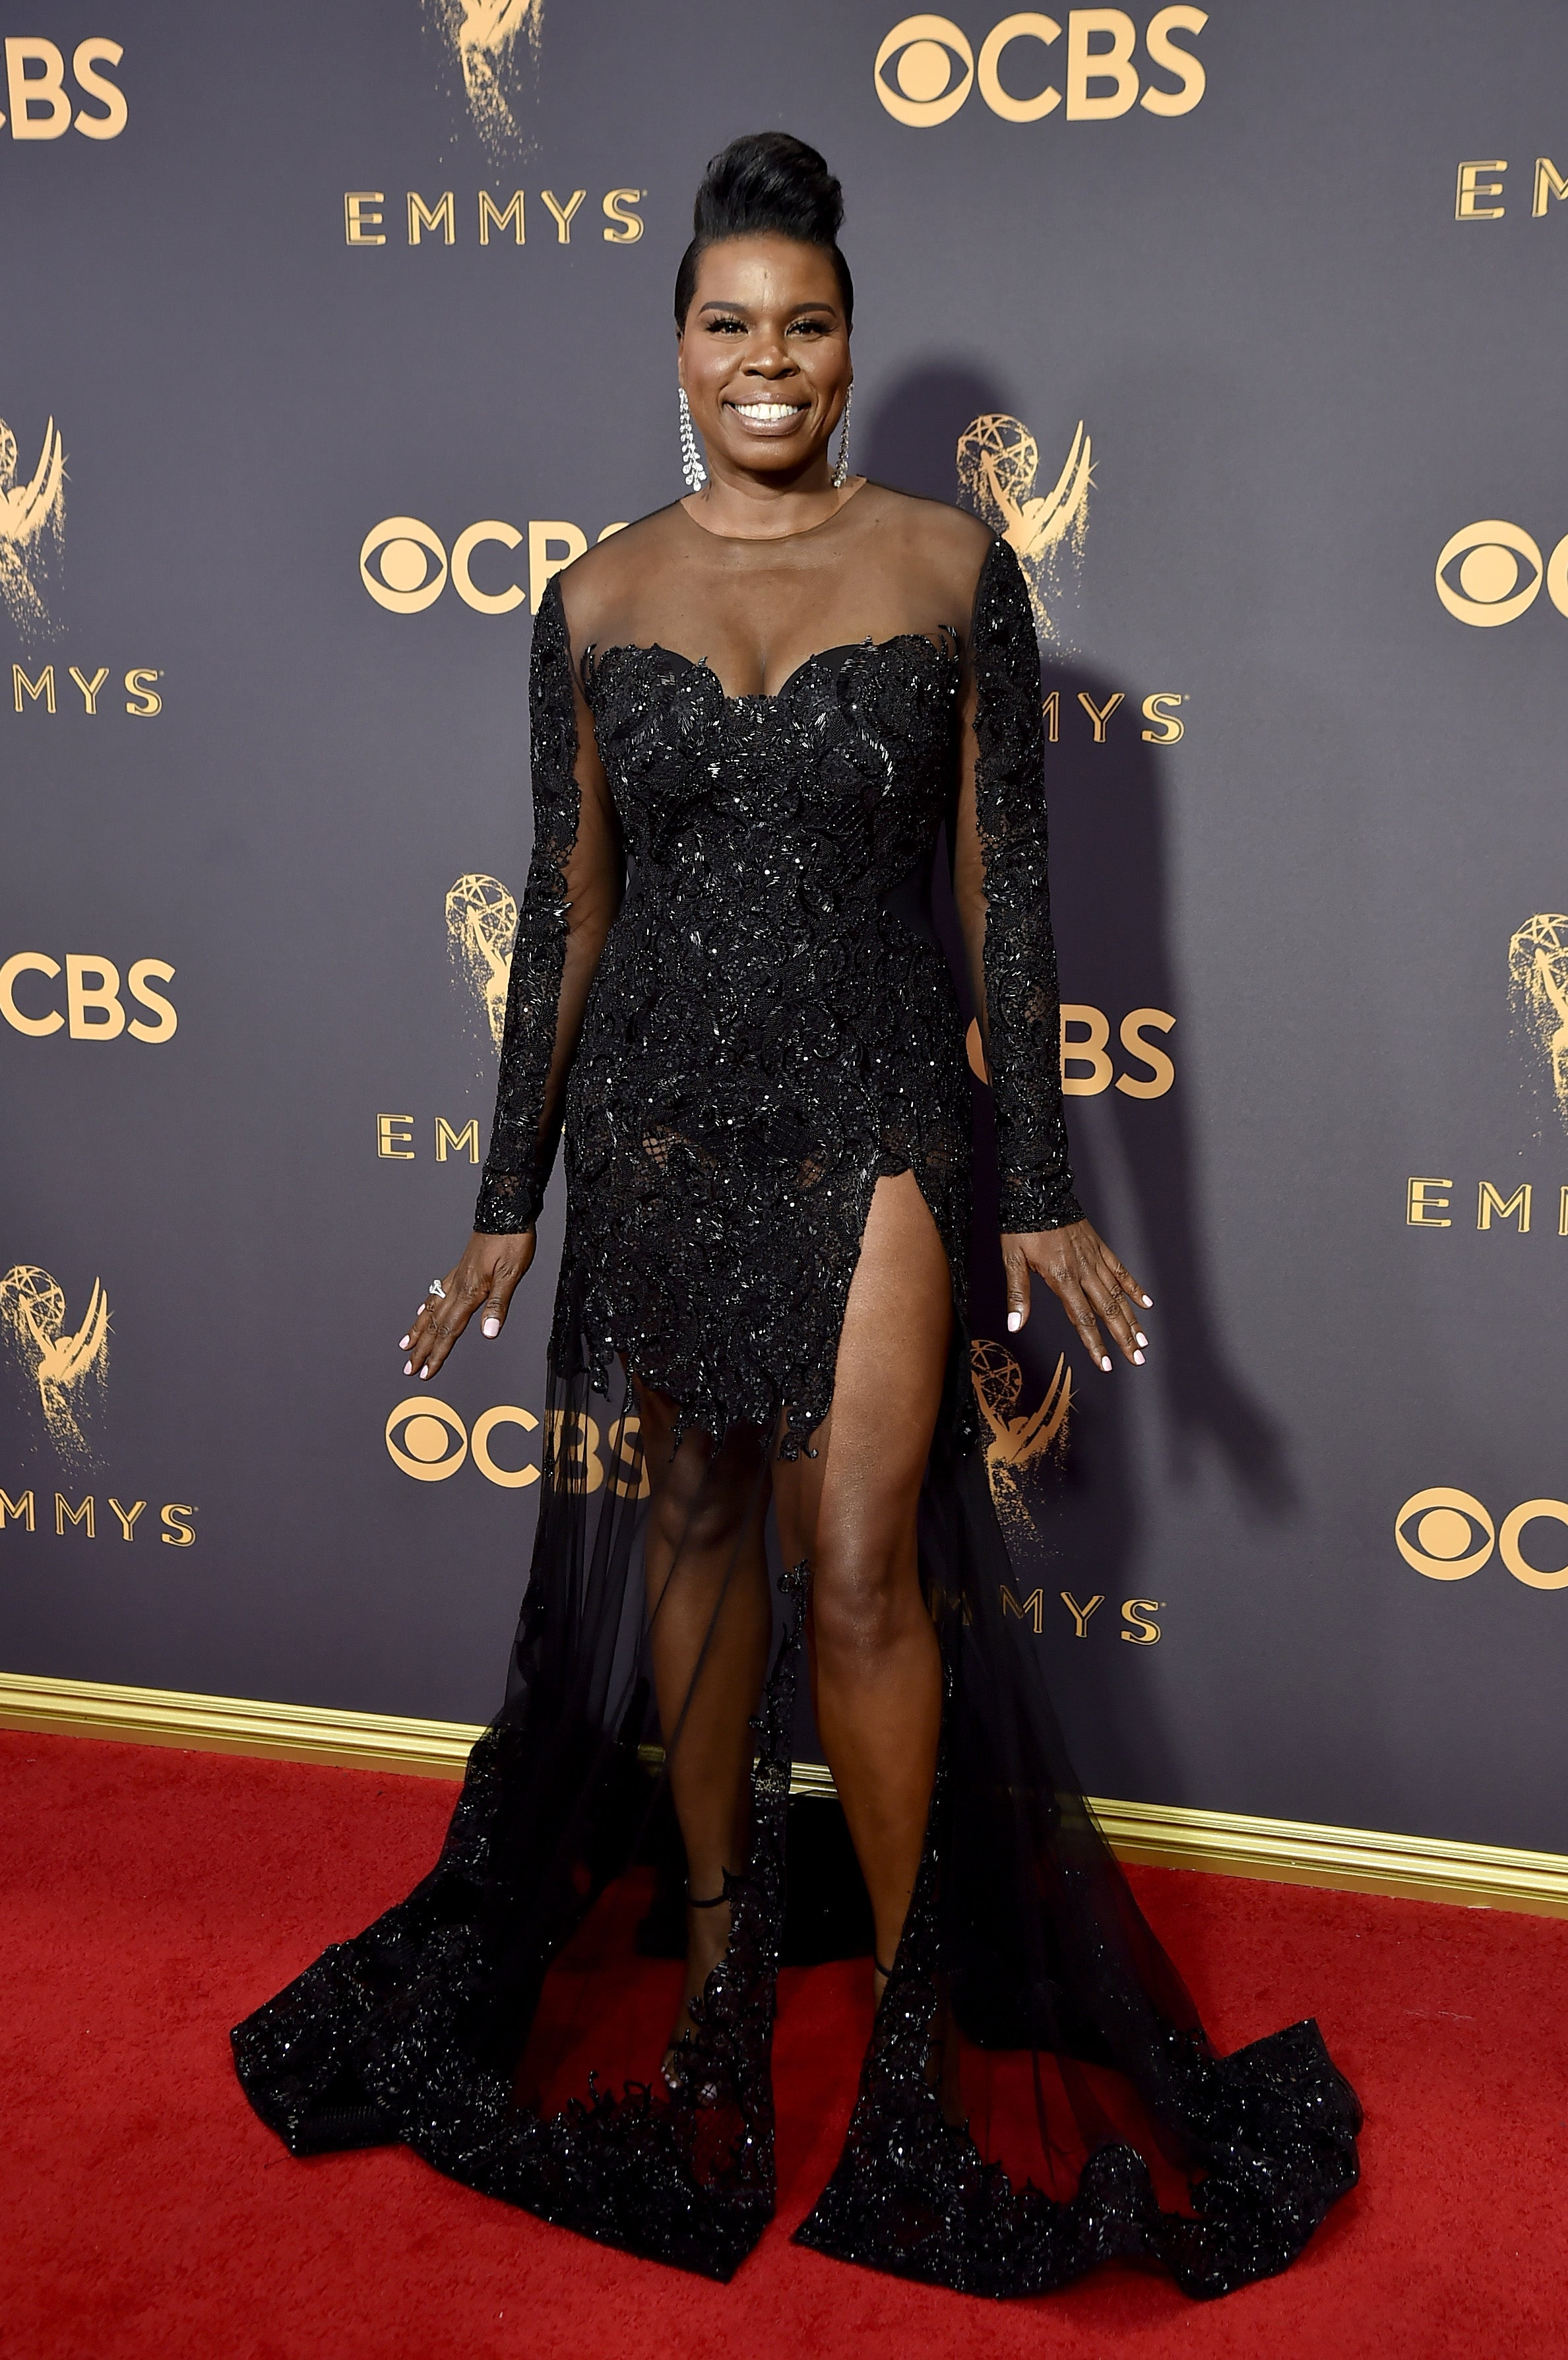 Leslie Jones' Amazing Legs In Her Equally Amazing Christian Siriano Gown at The Emmys Are A Moment In Time